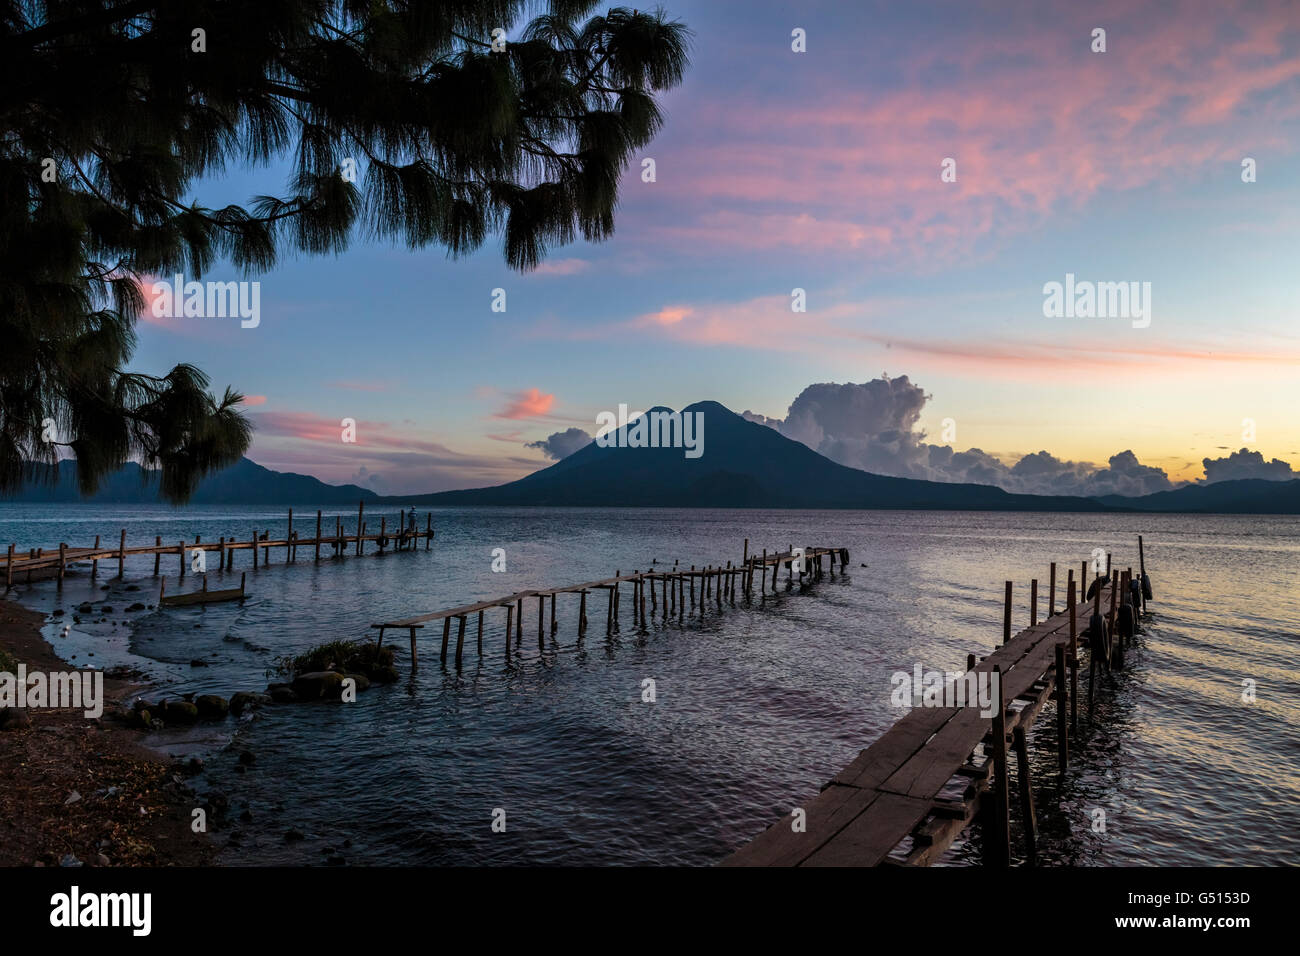 The sunset paints the sky over the outline of San Pedro Volcano across Lago de Atitlan in Guatemala at the docks - Stock Image